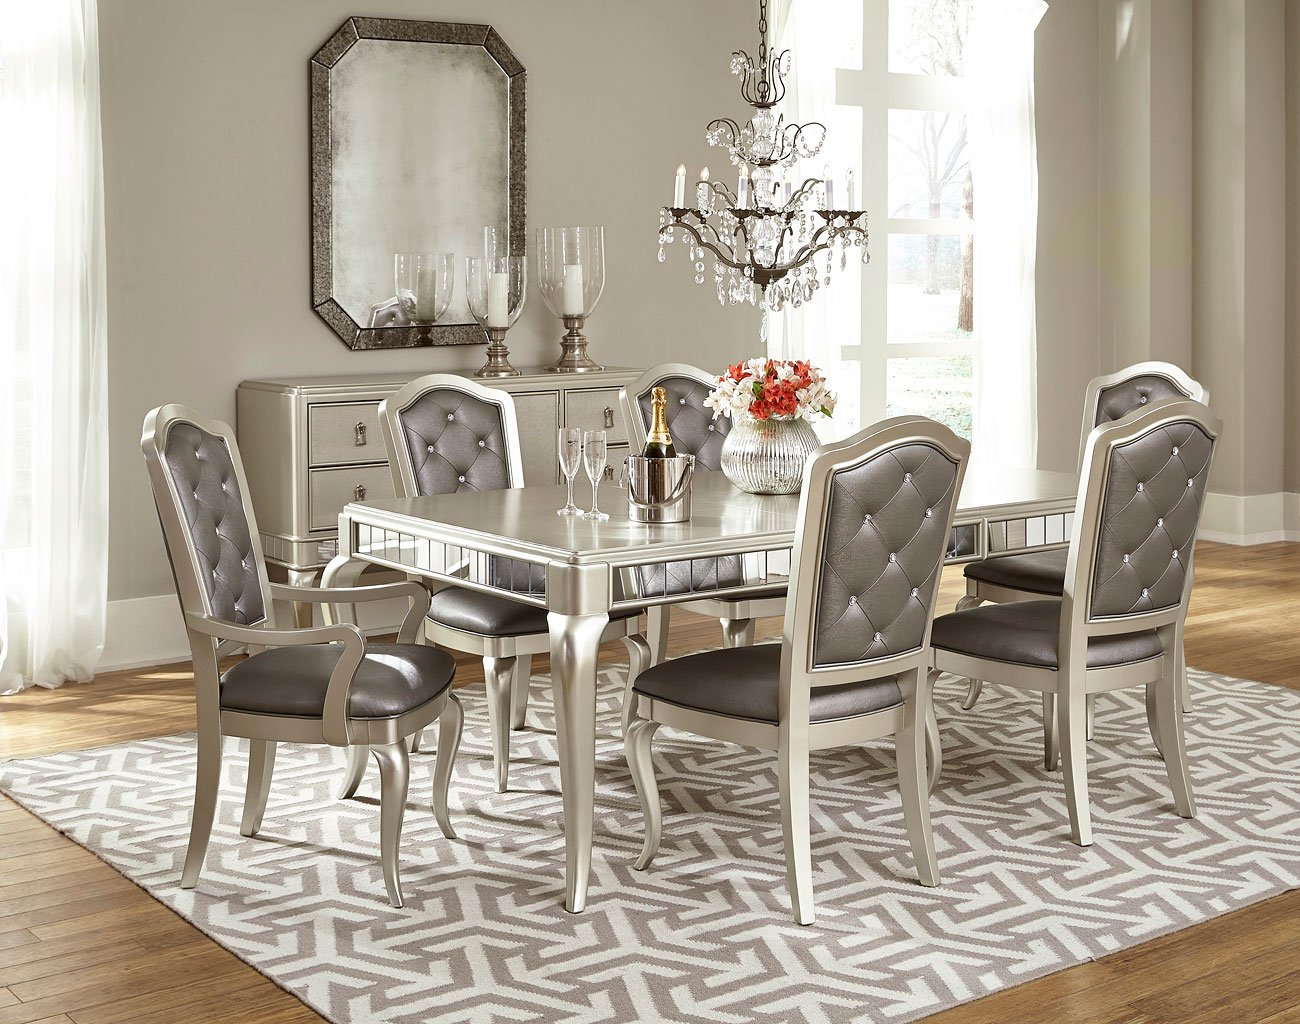 Diva Dining Room Set Samuel Lawrence Furniture 1 Reviews